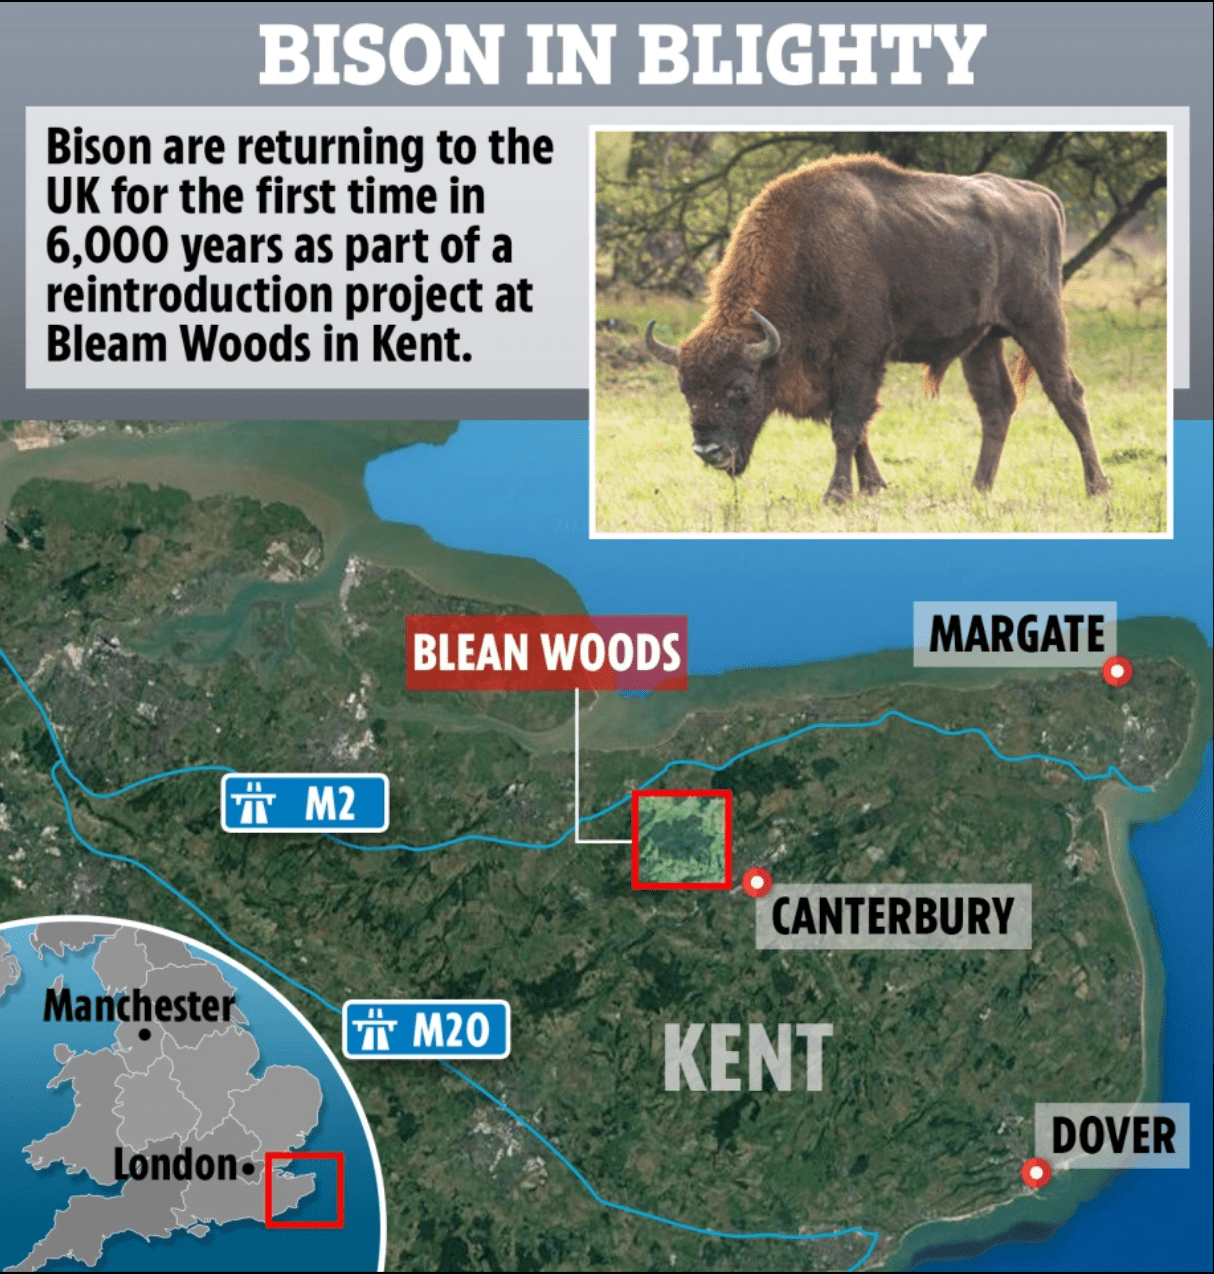 News, Bison are returning, Blean woods, Canterbury